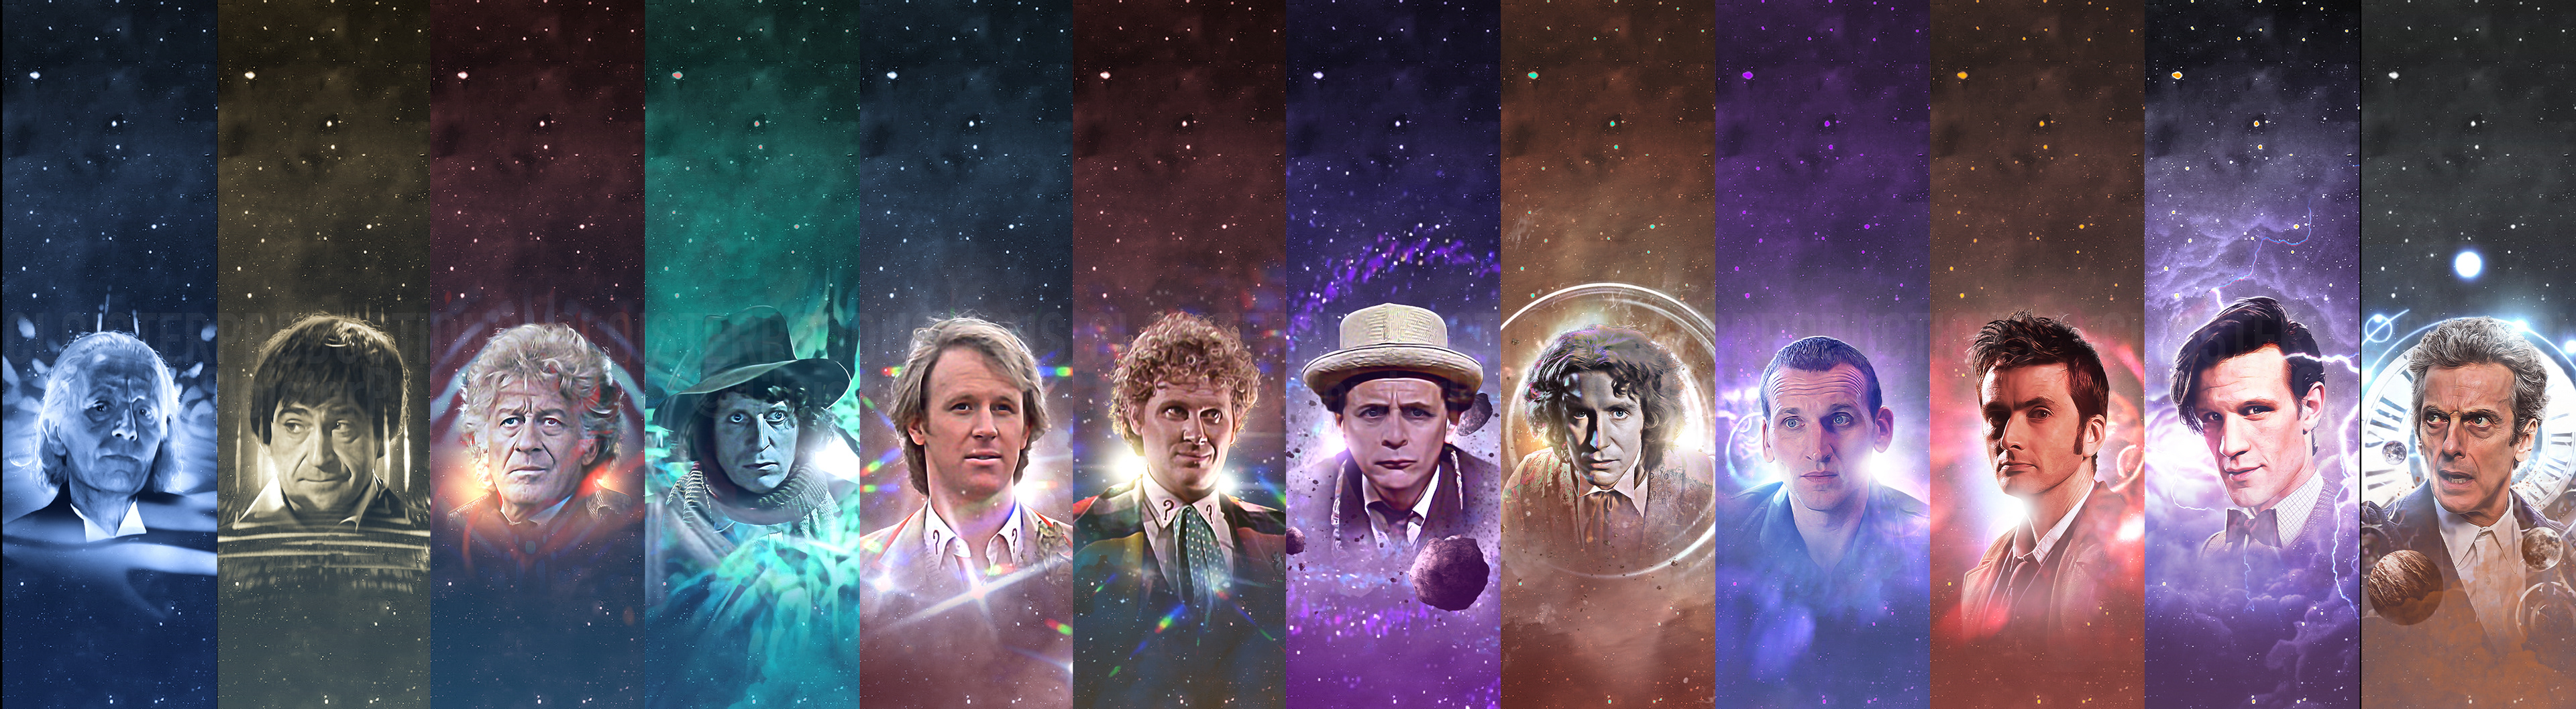 dave burgess motion graphics and design doctor who alternative